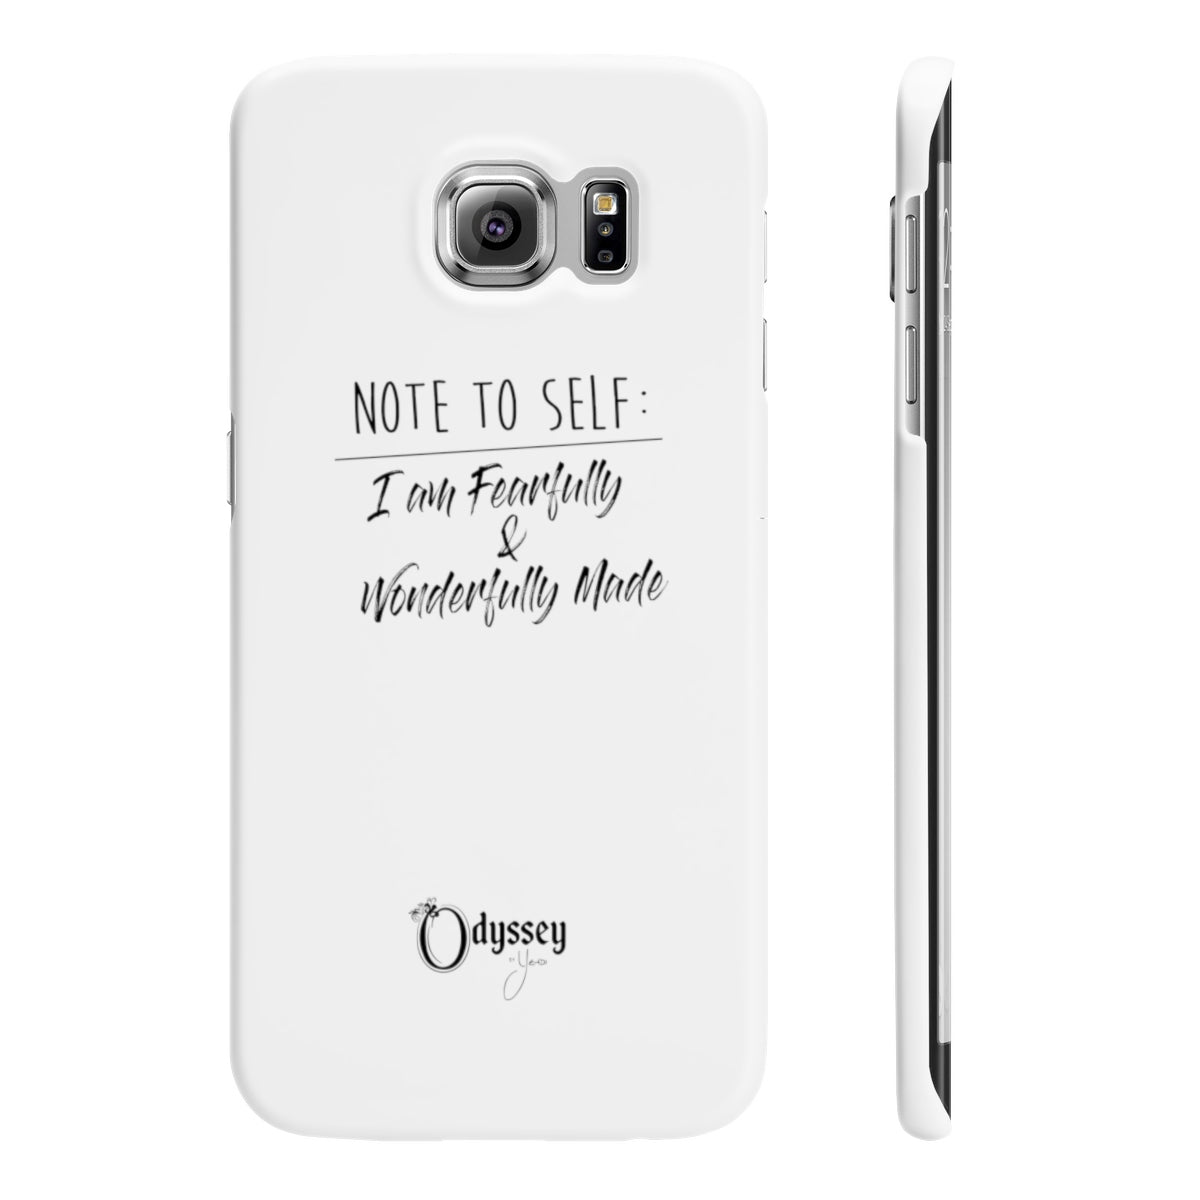 Odyssey Note To Self Slim Phone Cases - Phone Case - Odyssey By Yendi